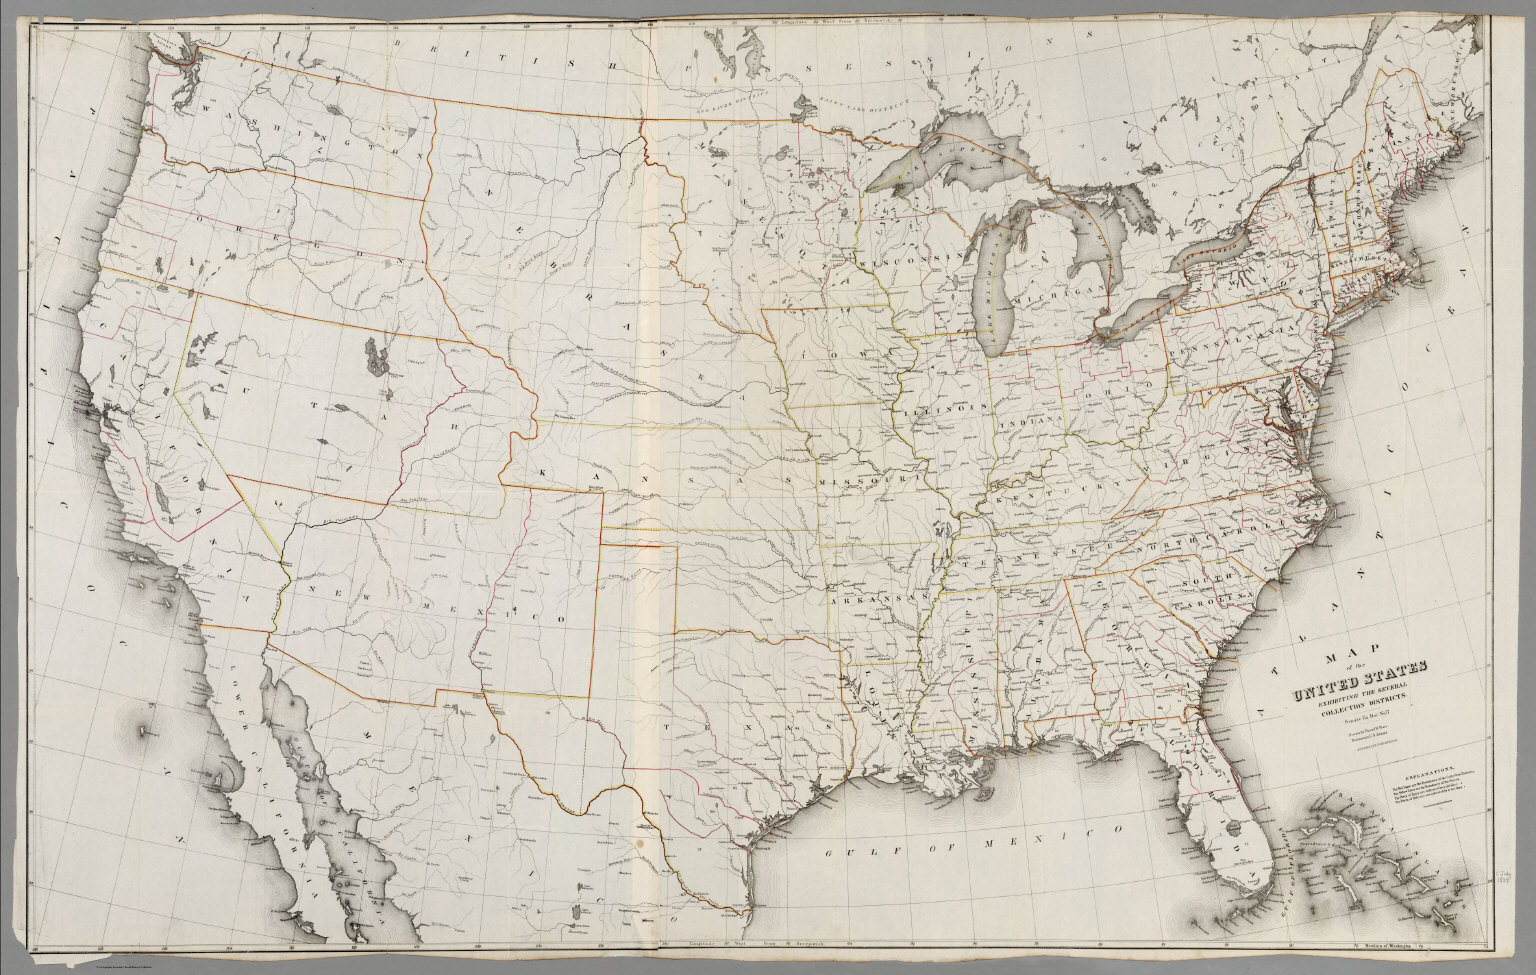 Map of the United States, 1854